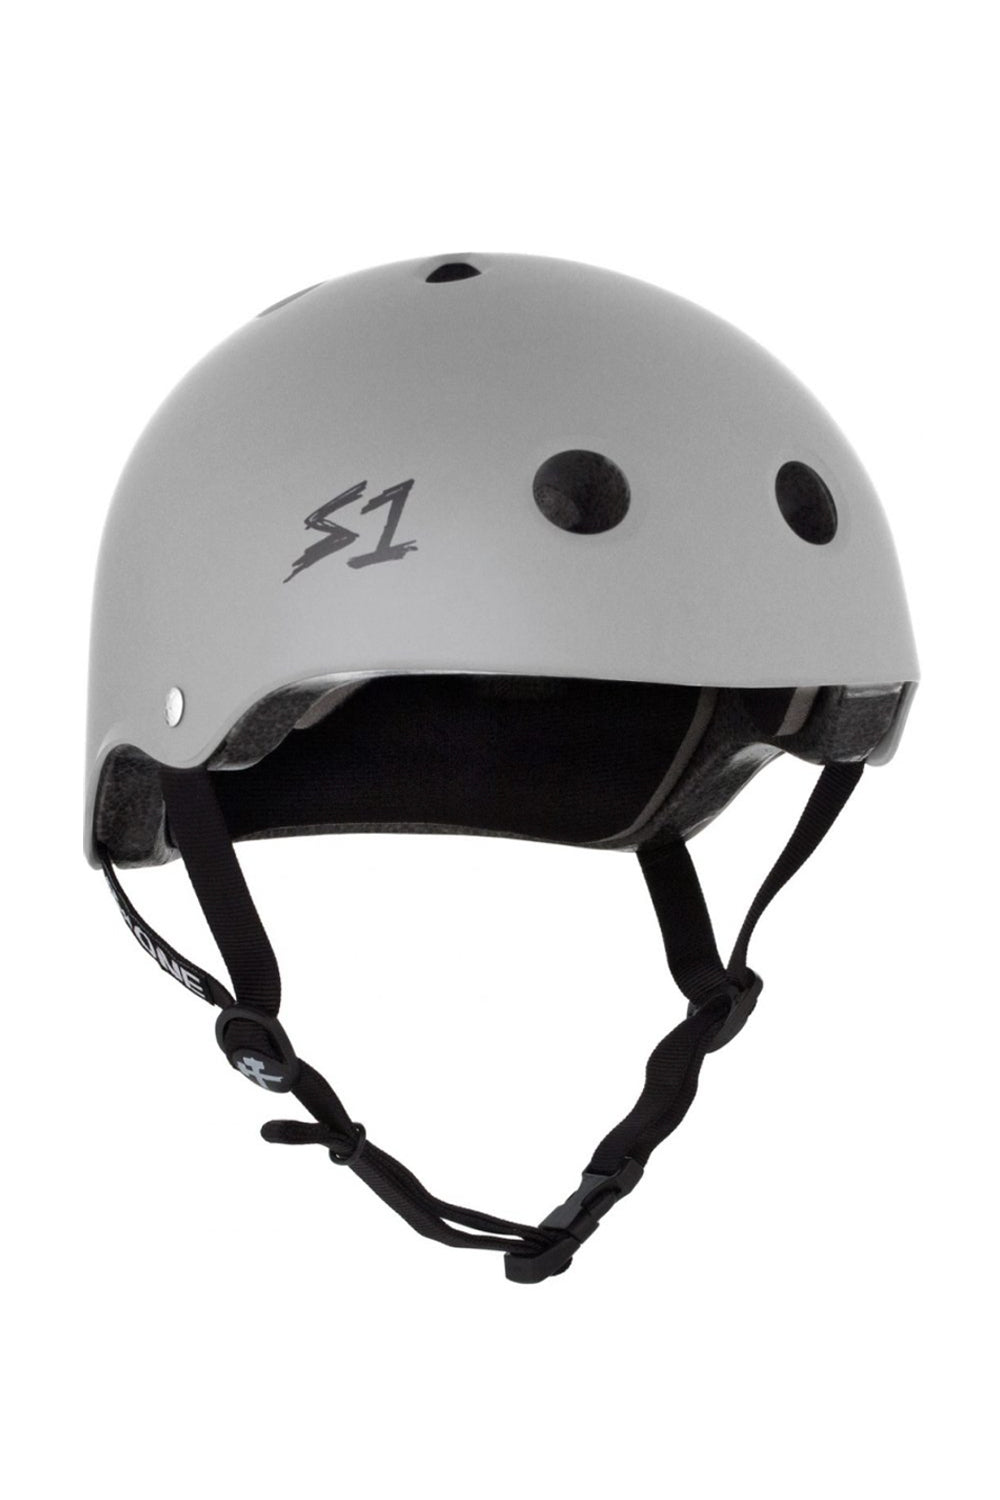 S One Lifer Helmet - Light Grey Matte